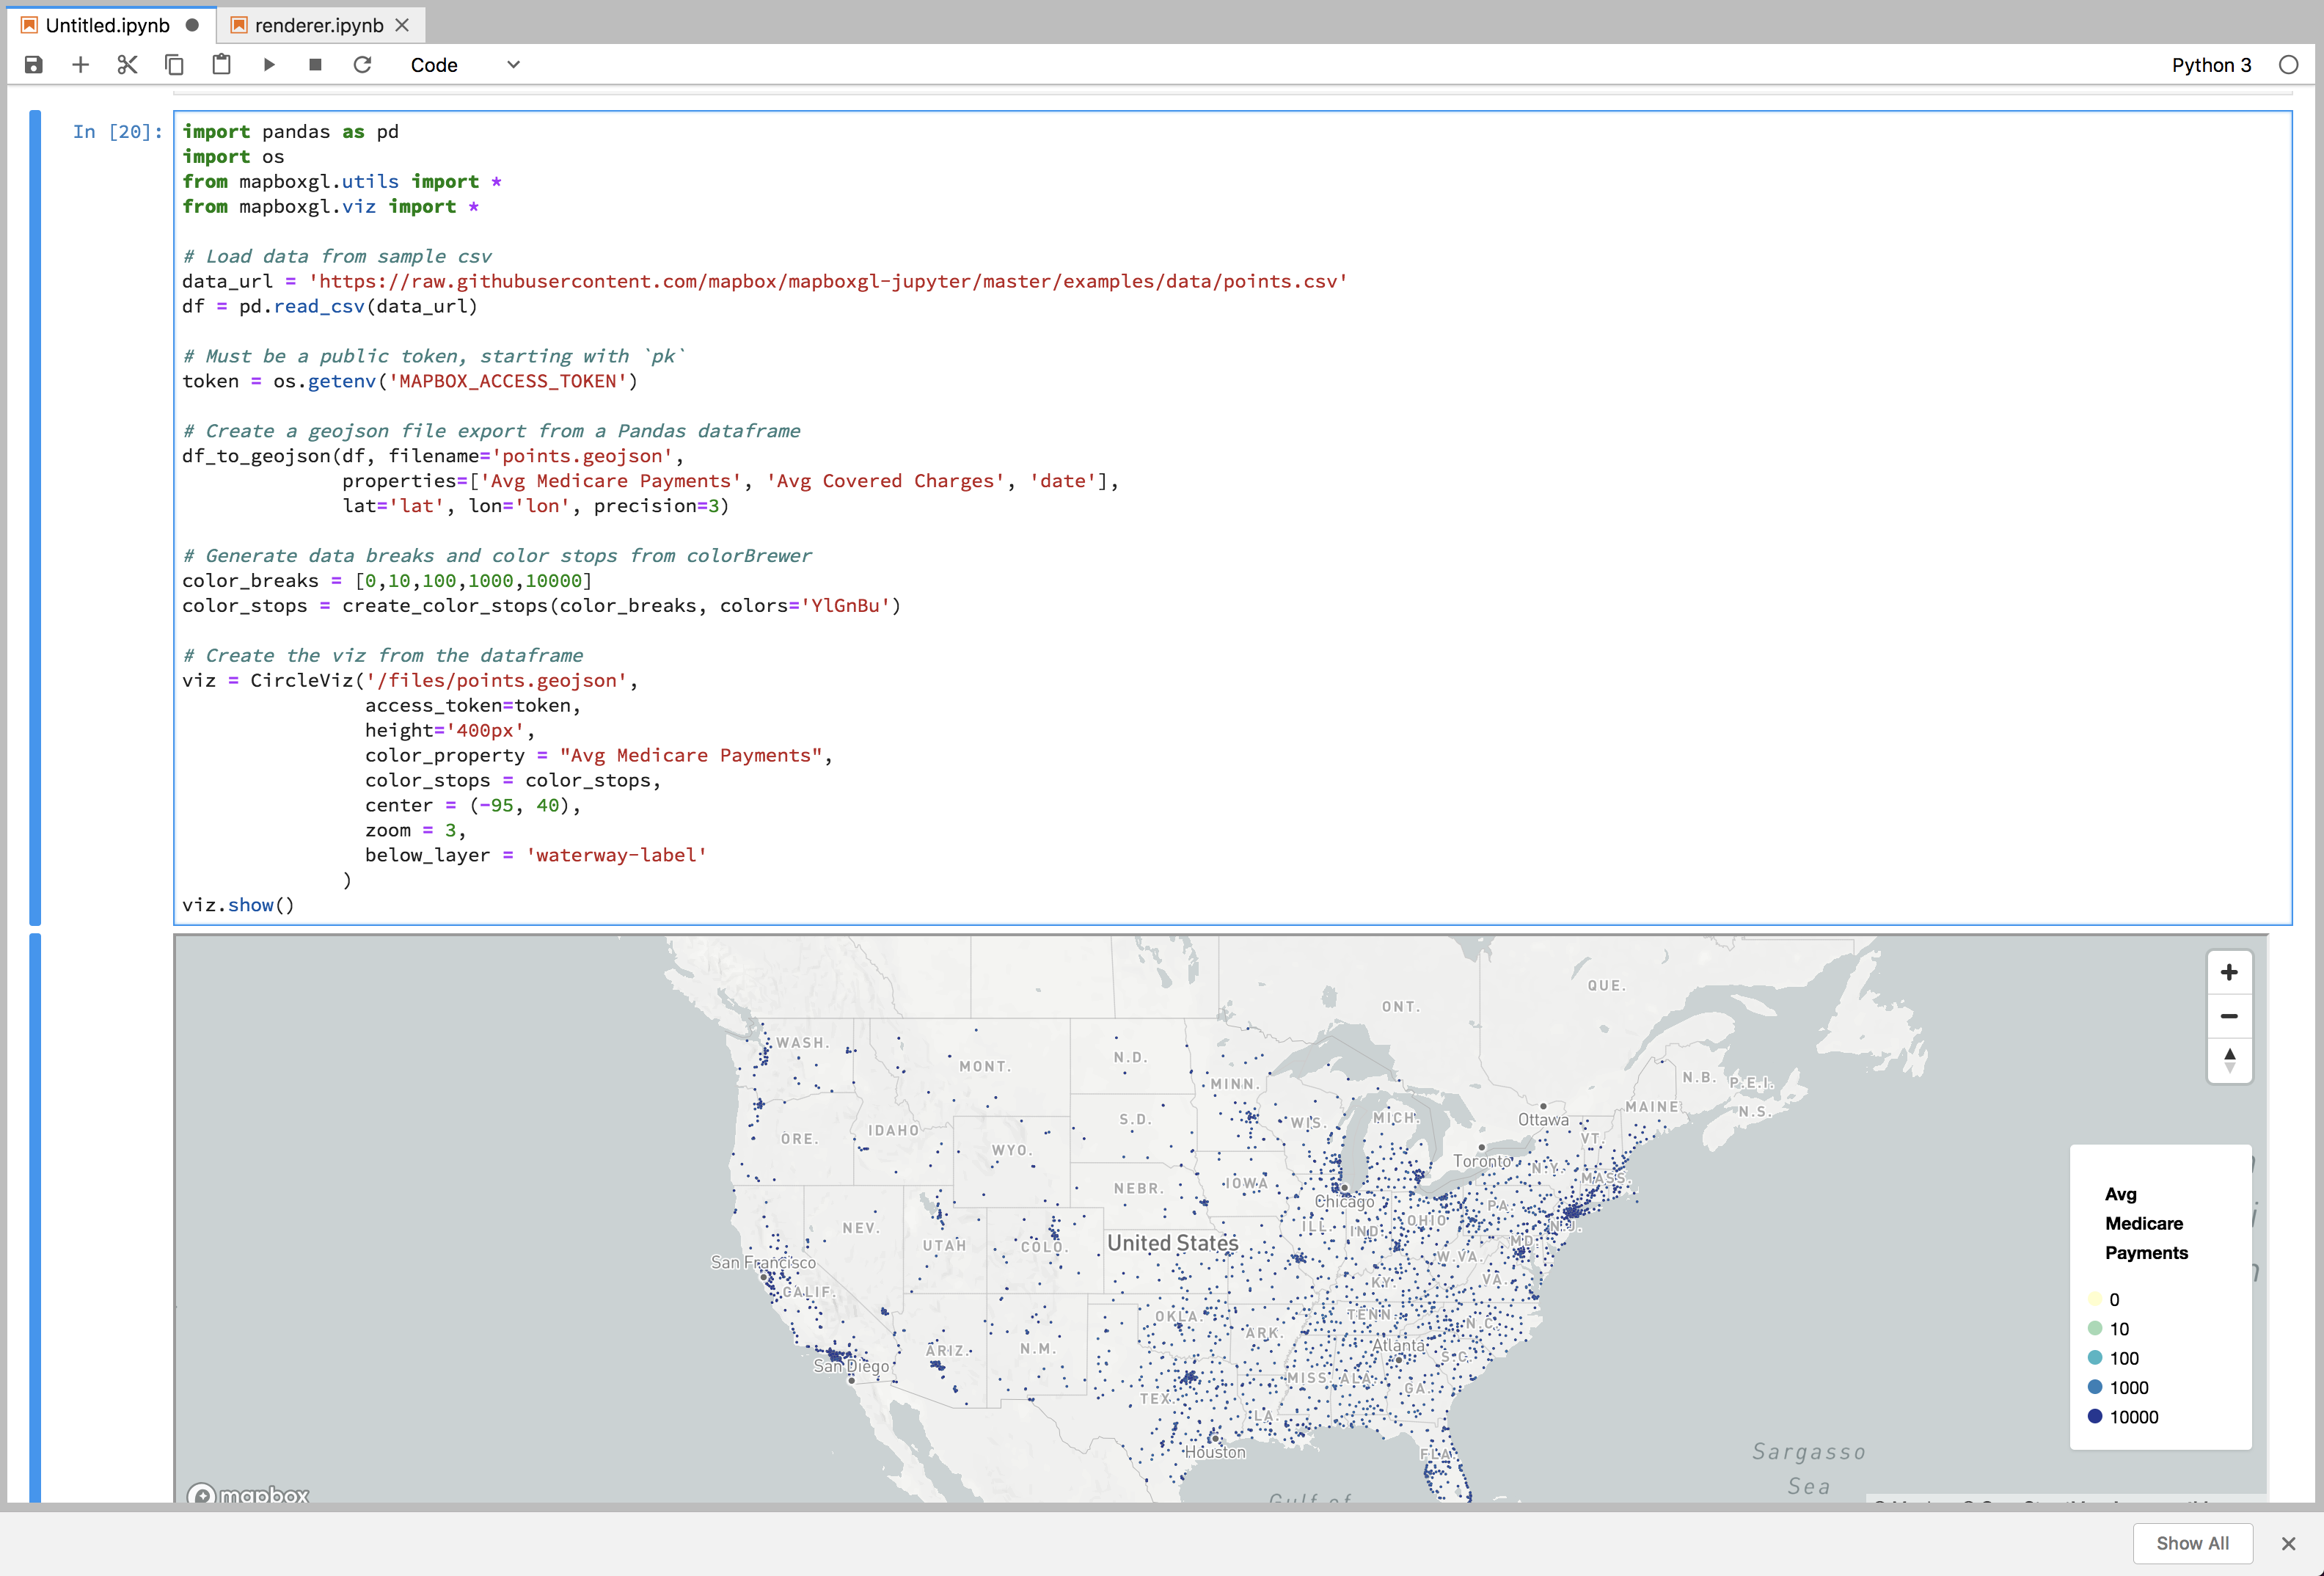 Data does not show in JupyterLab from local geojson file